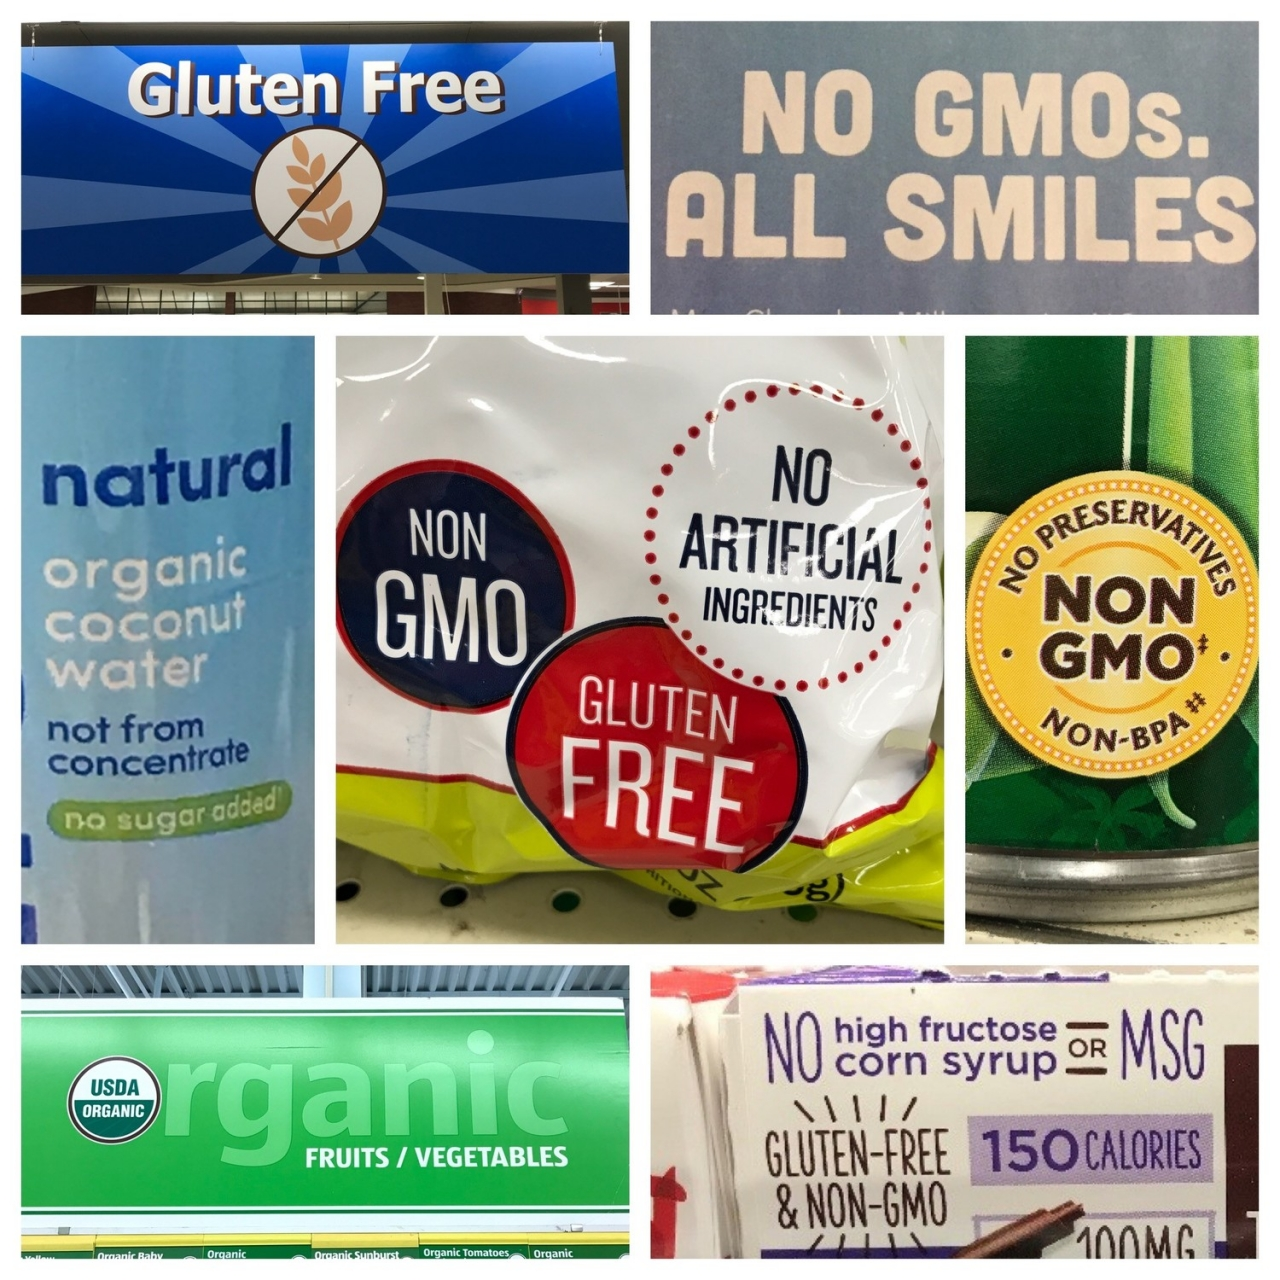 Discussion on this topic: The Scary Truth About GMO Labeling, the-scary-truth-about-gmo-labeling/